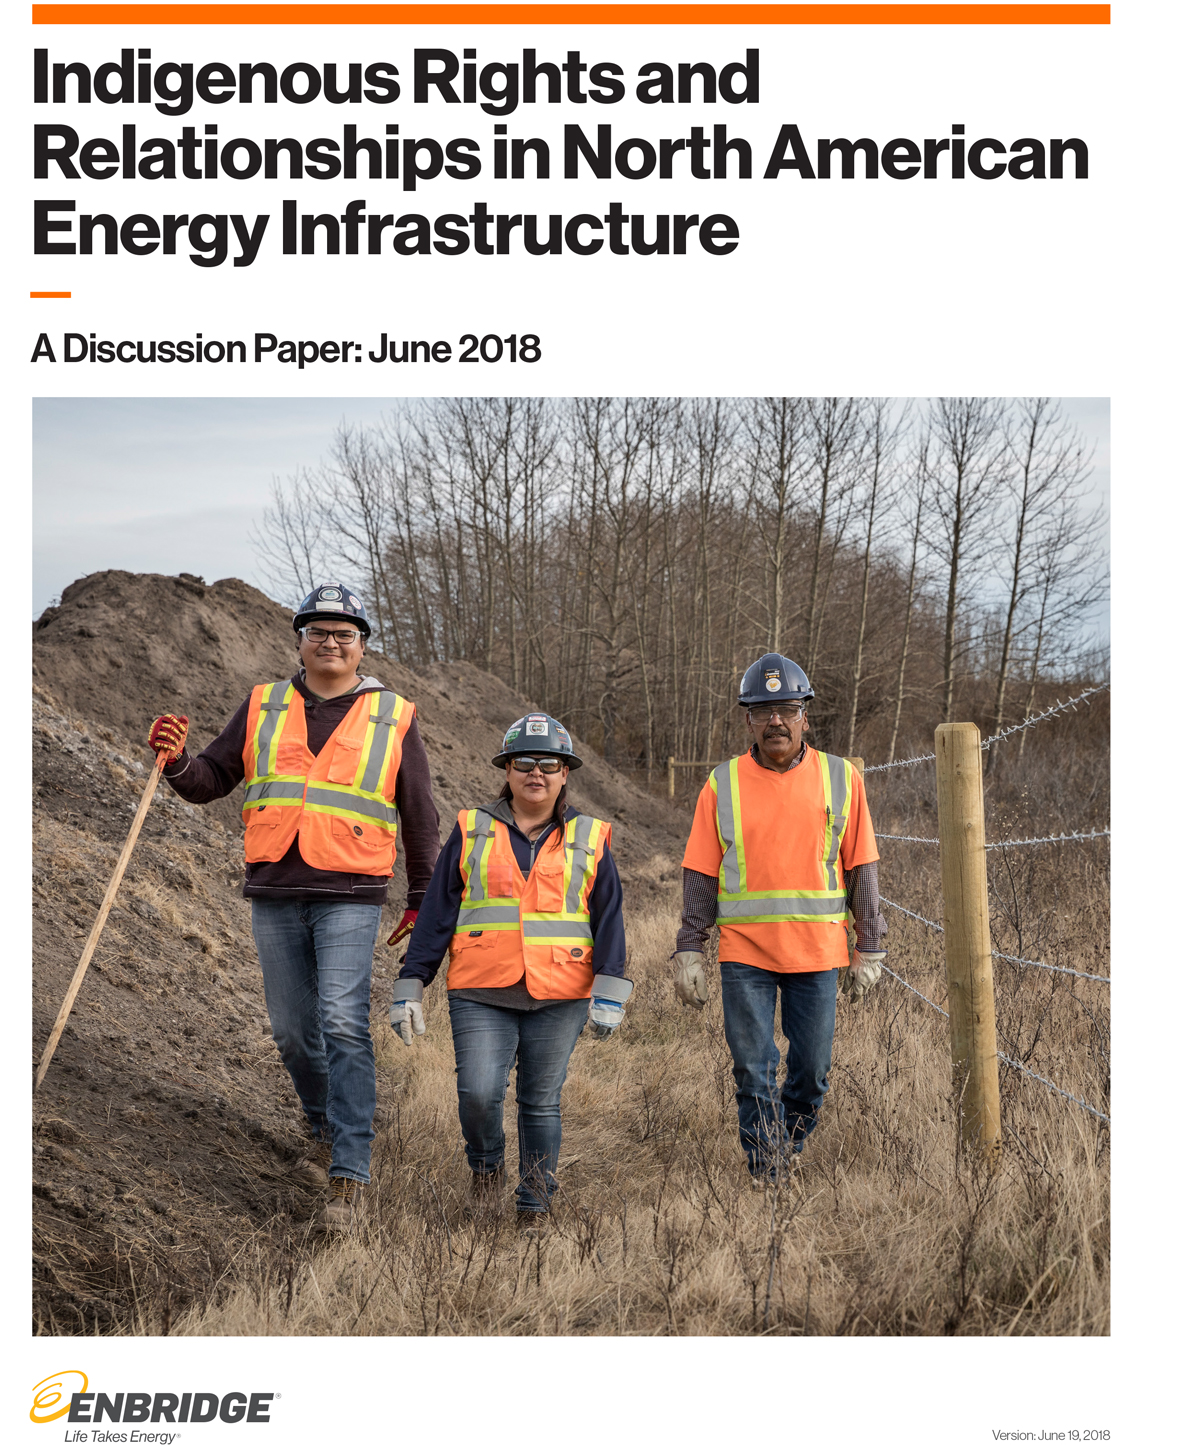 Indigenous Rights and Relationships in North American Energy Infrastructure